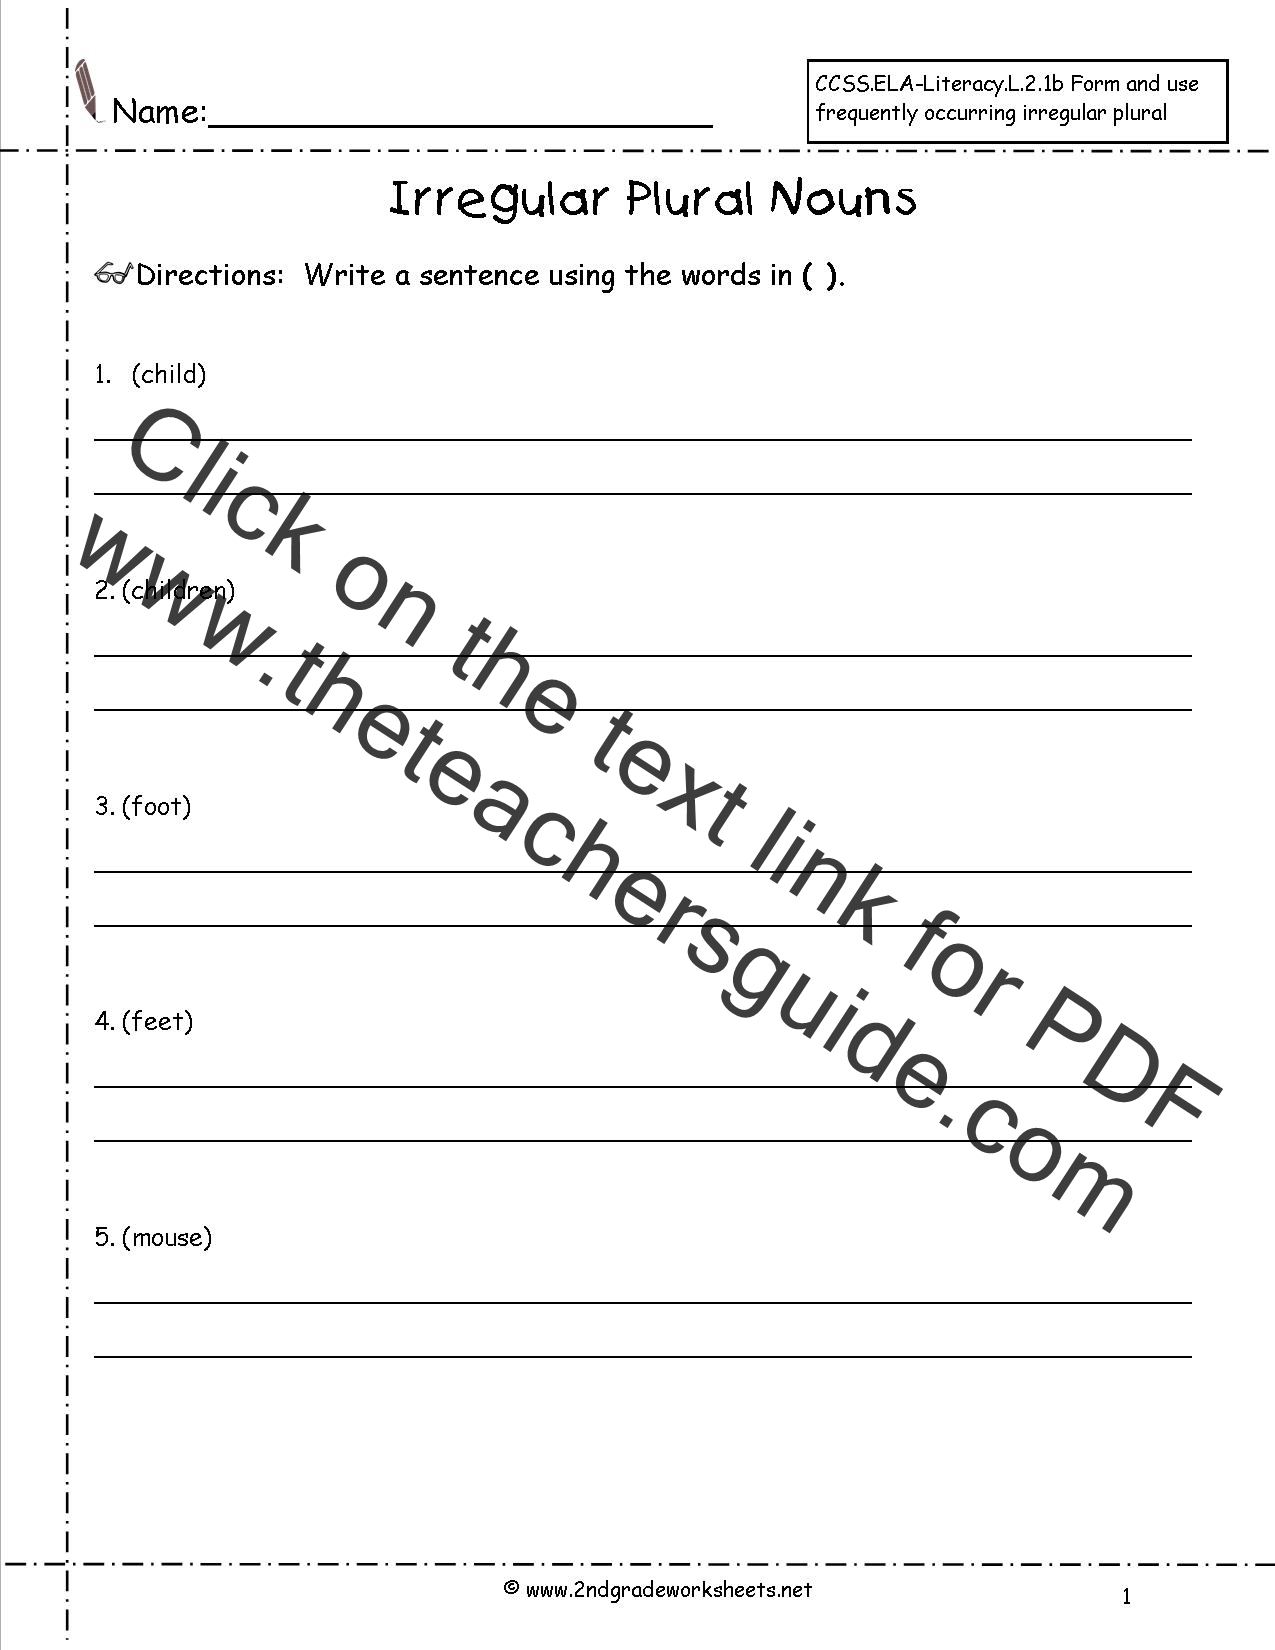 Worksheets Irregular Plural Nouns Worksheet singular and plural nouns worksheets irregular worksheet